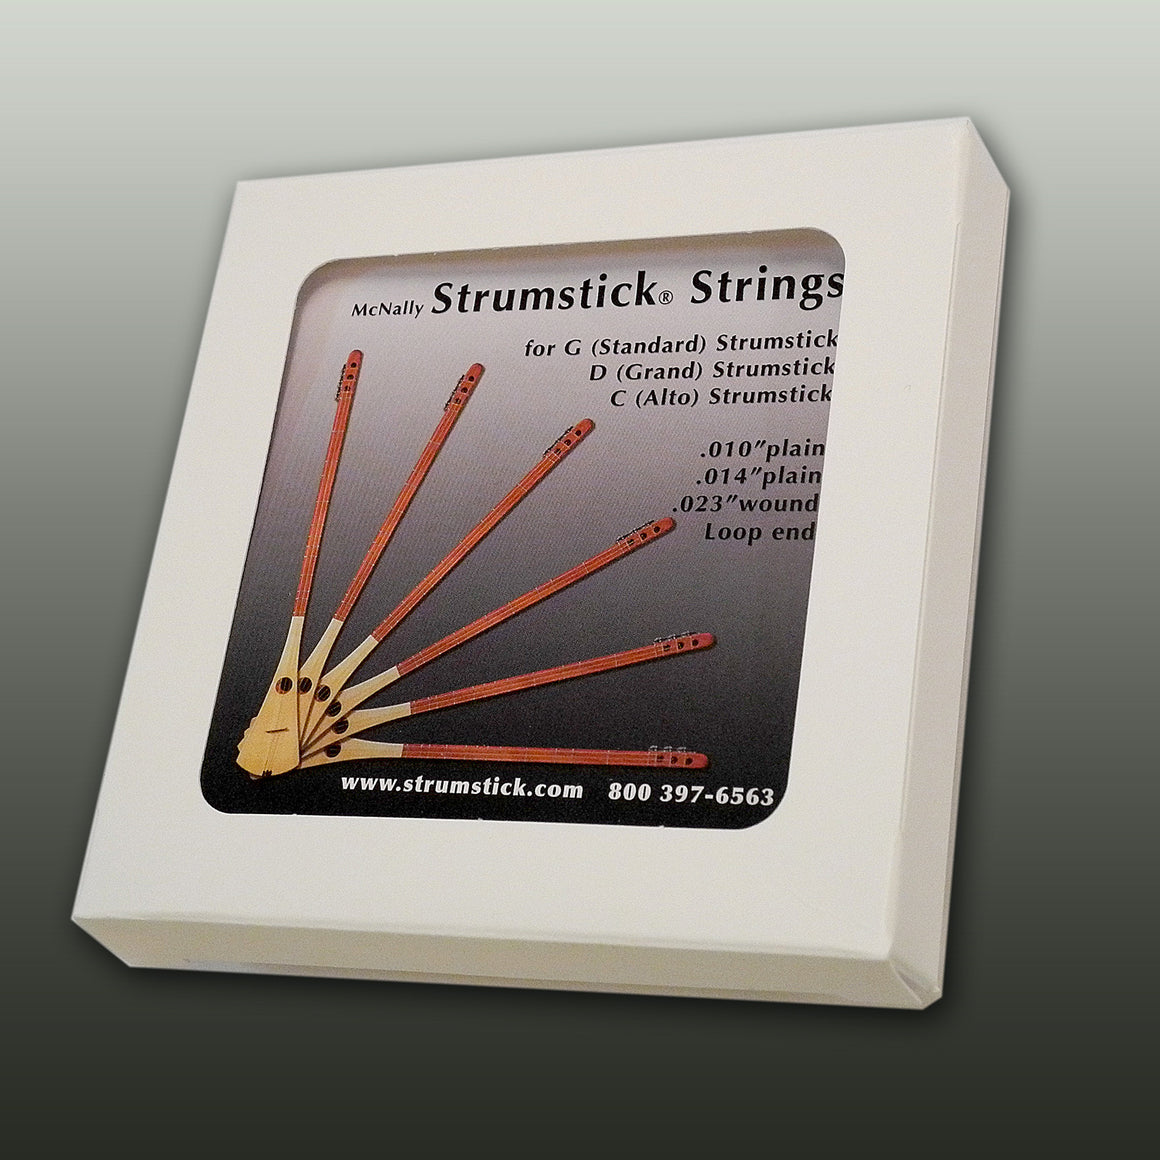 Strumstick Strings $6